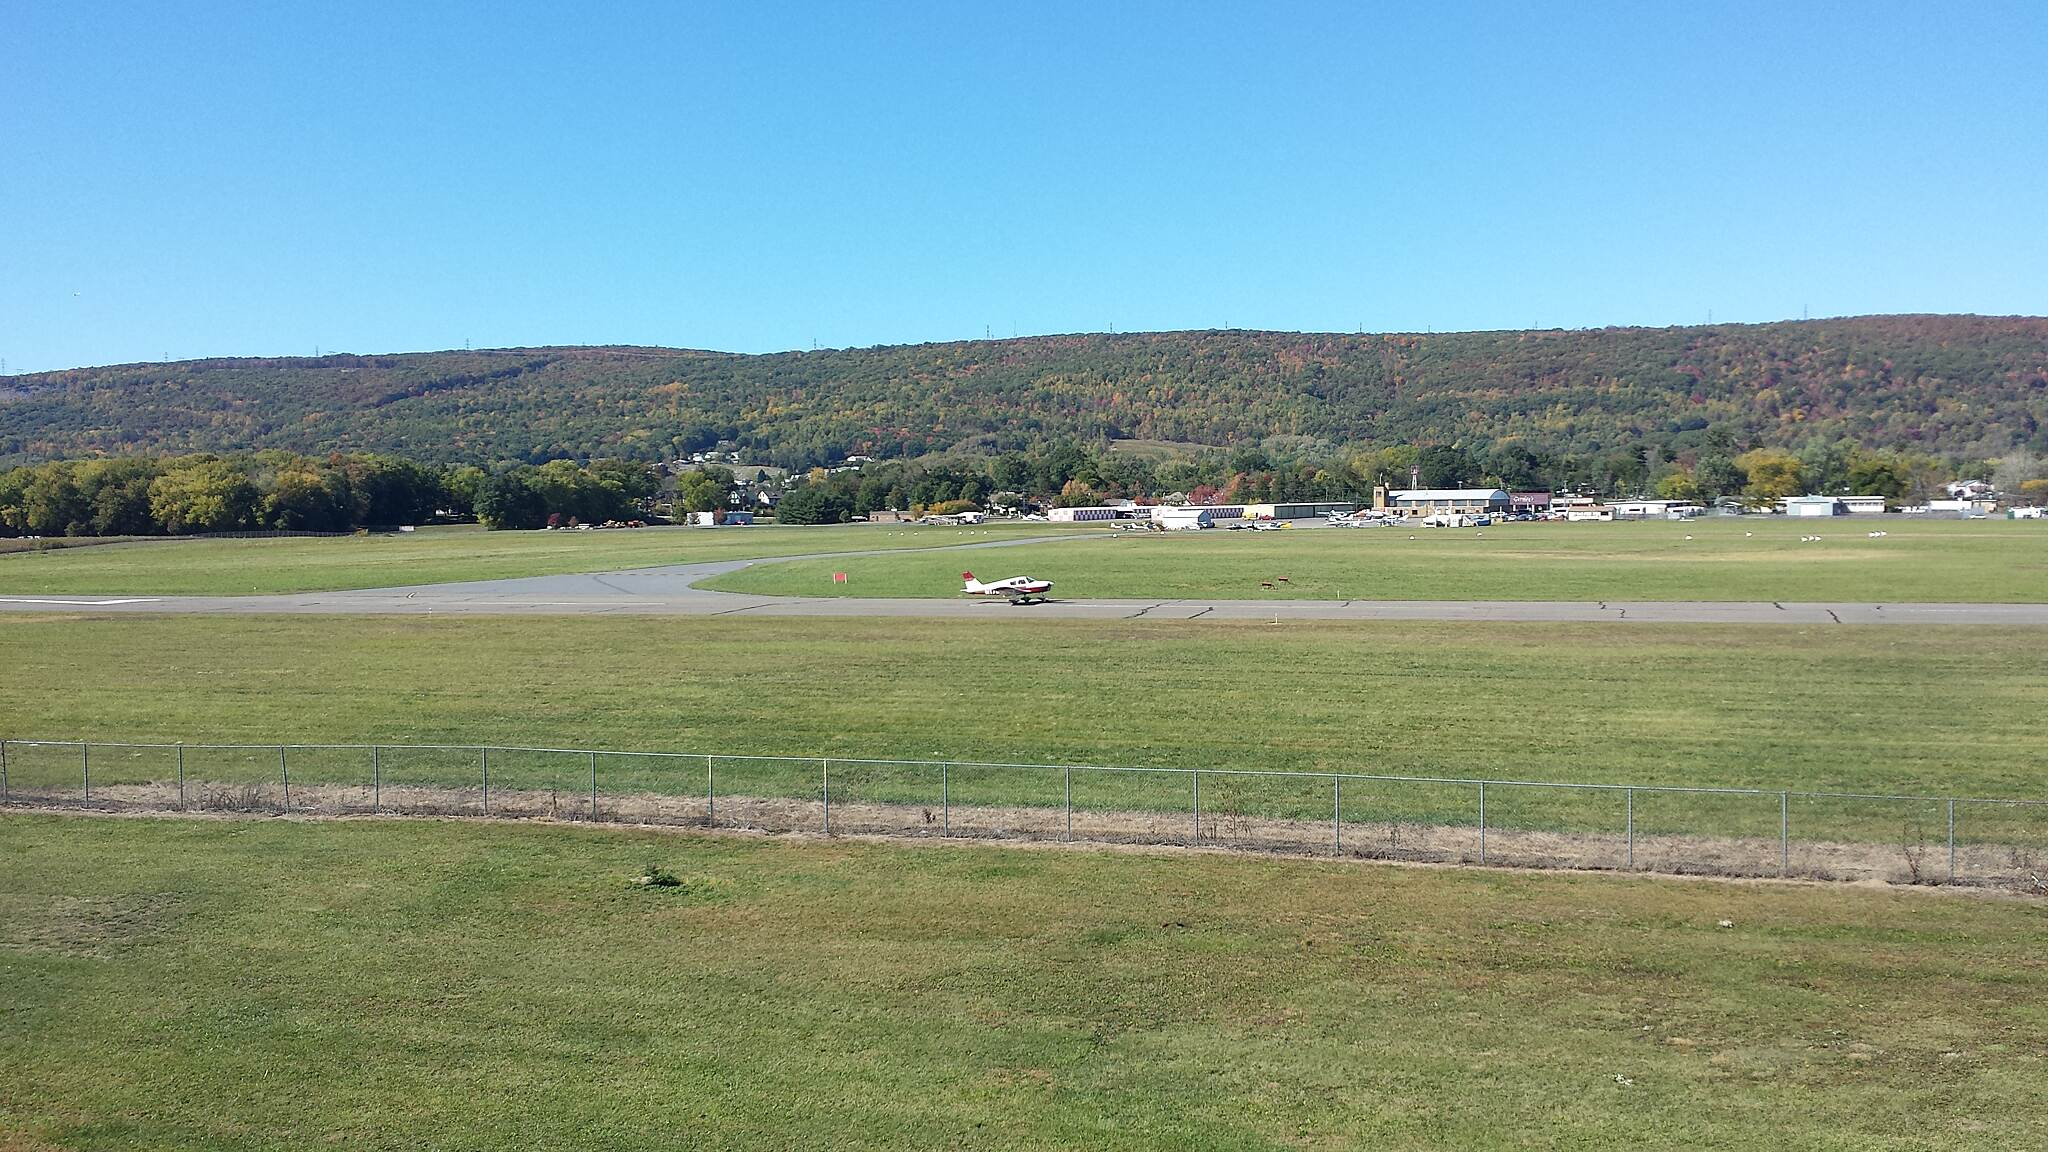 Luzerne County Levee Trail Airport nice view overlooking small airport adjacent to the trail